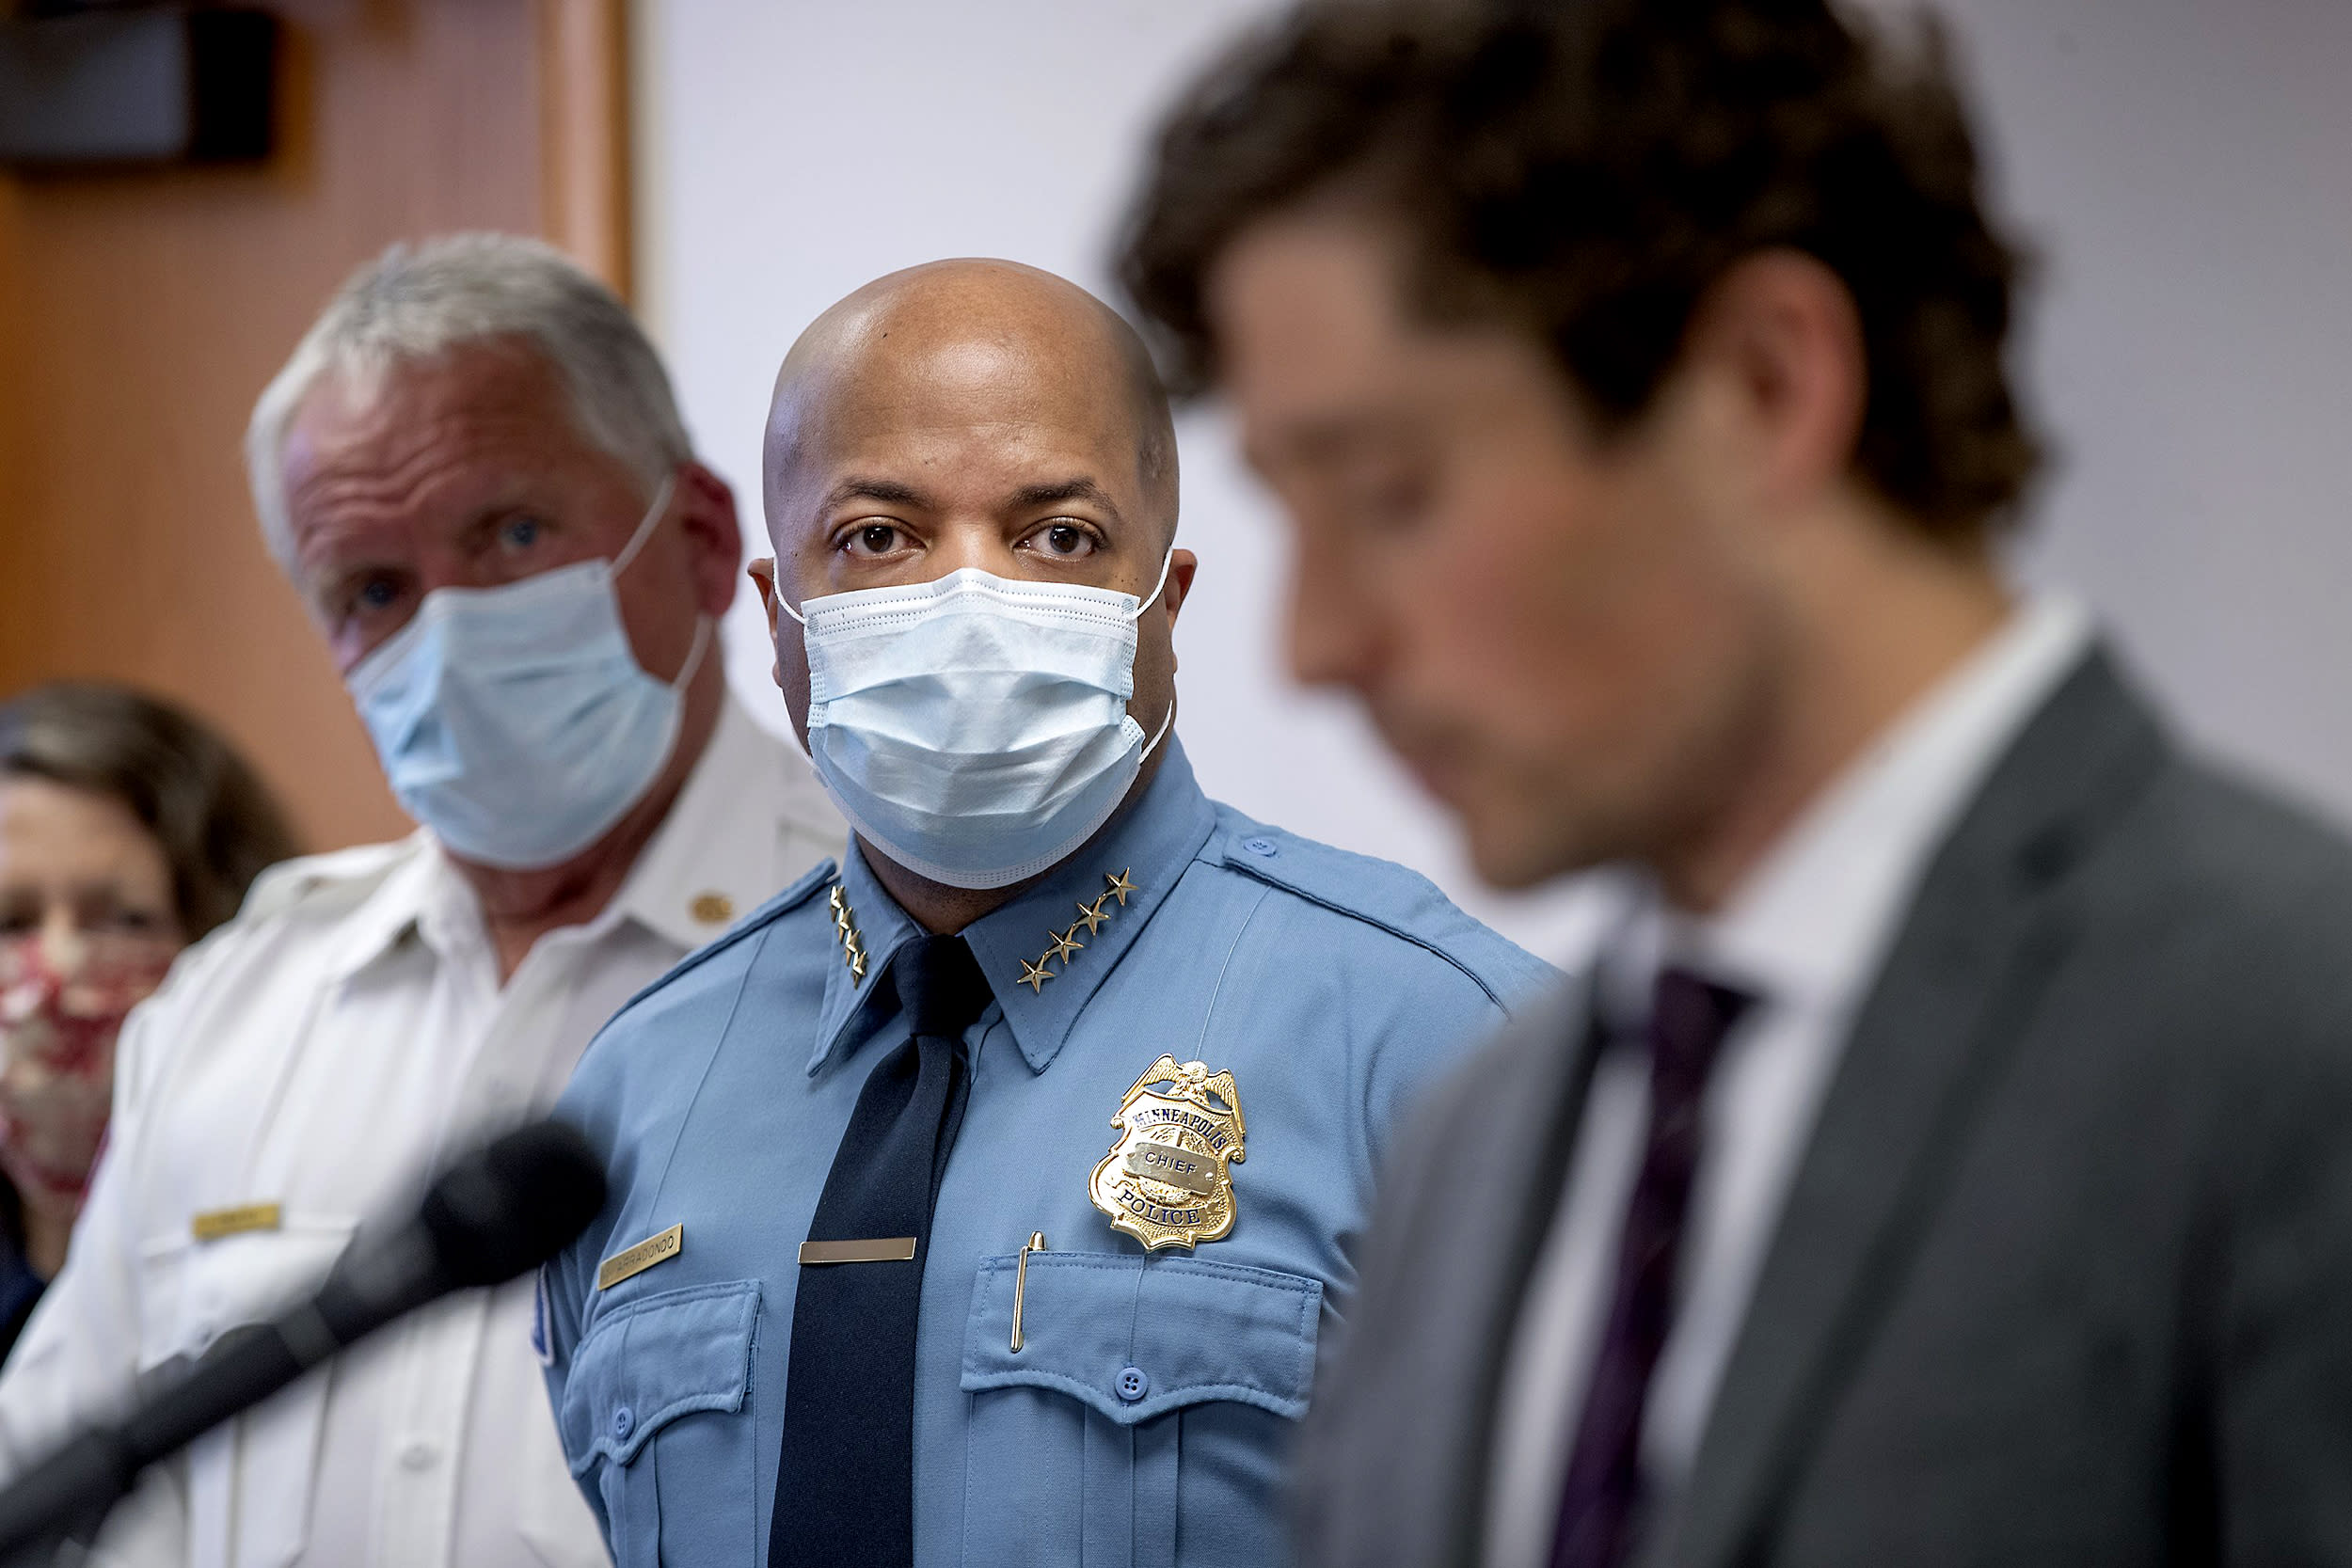 Minneapolis commission takes up proposal to disband police